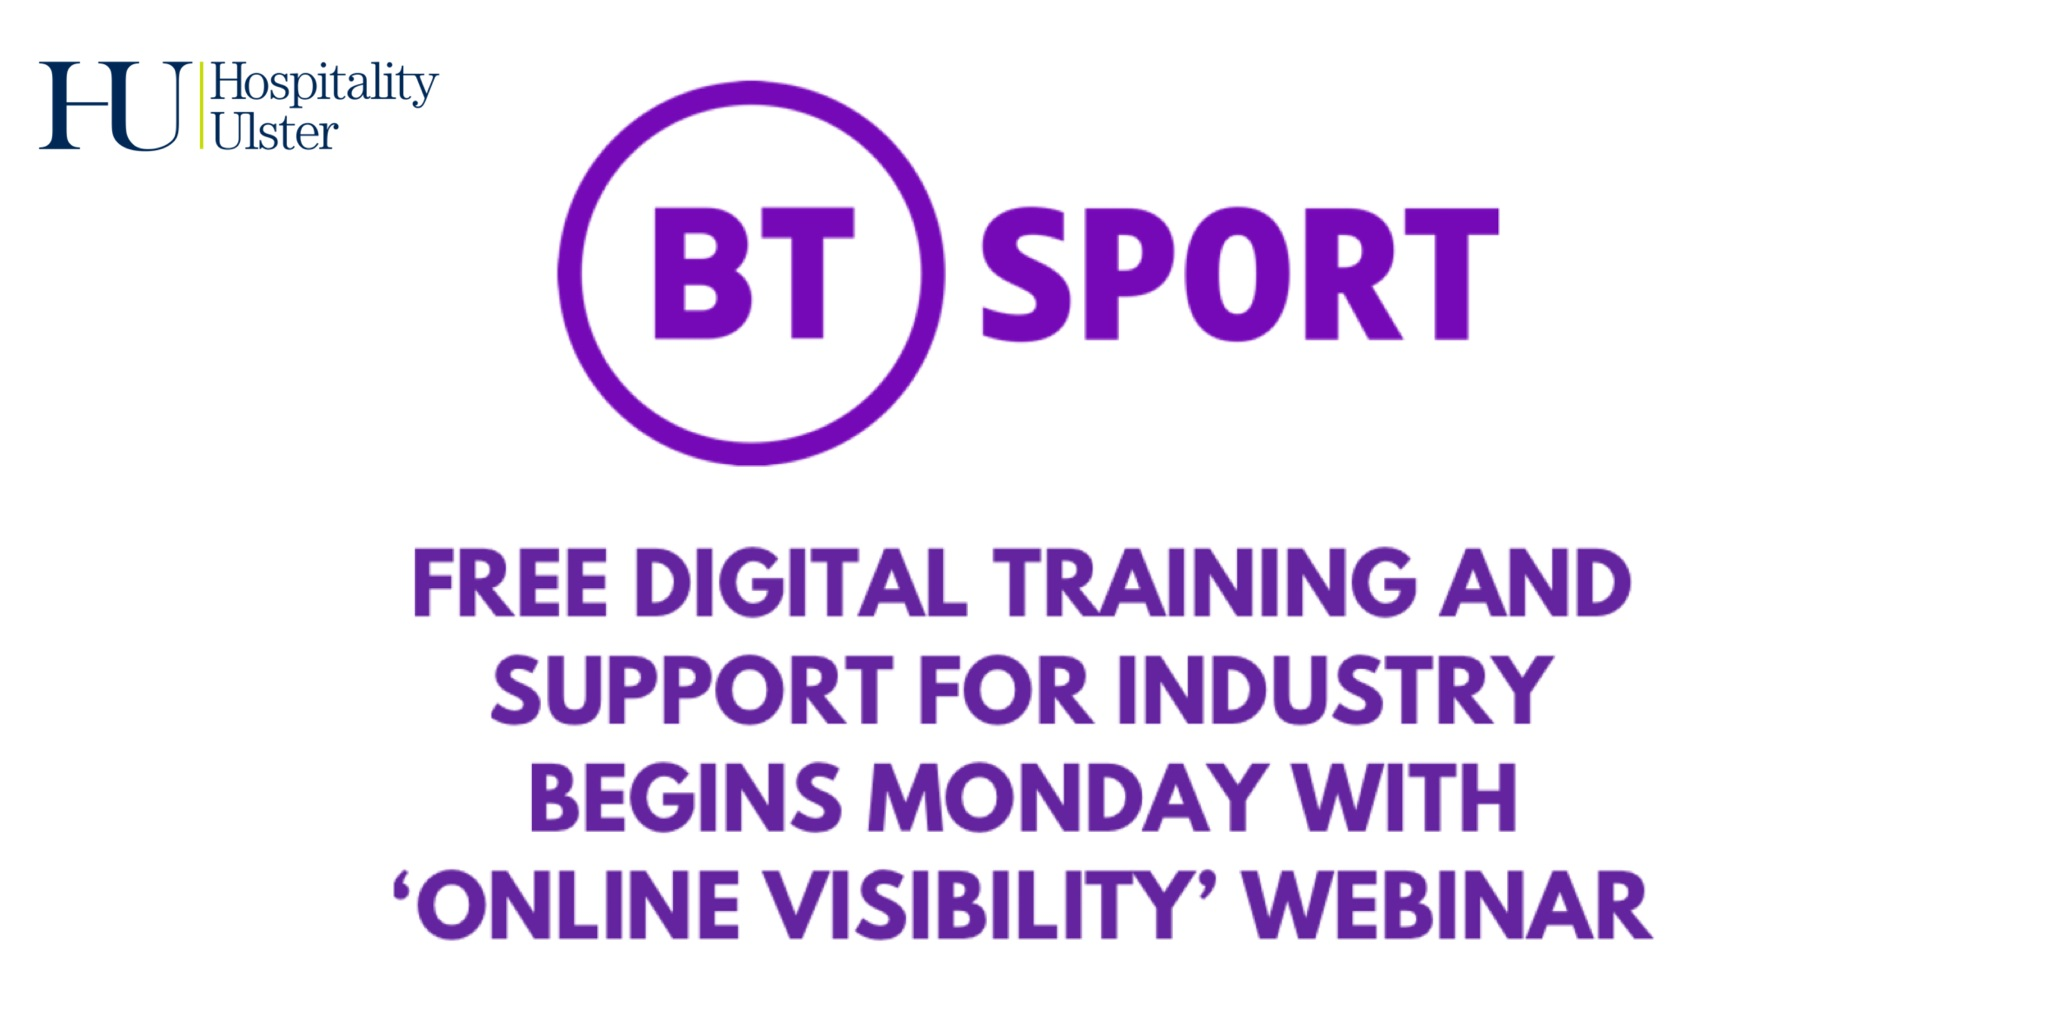 BT SPORT LAUNCHES FREE INDUSTRY FOCUSED DIGITAL SKILLS PROGRAM